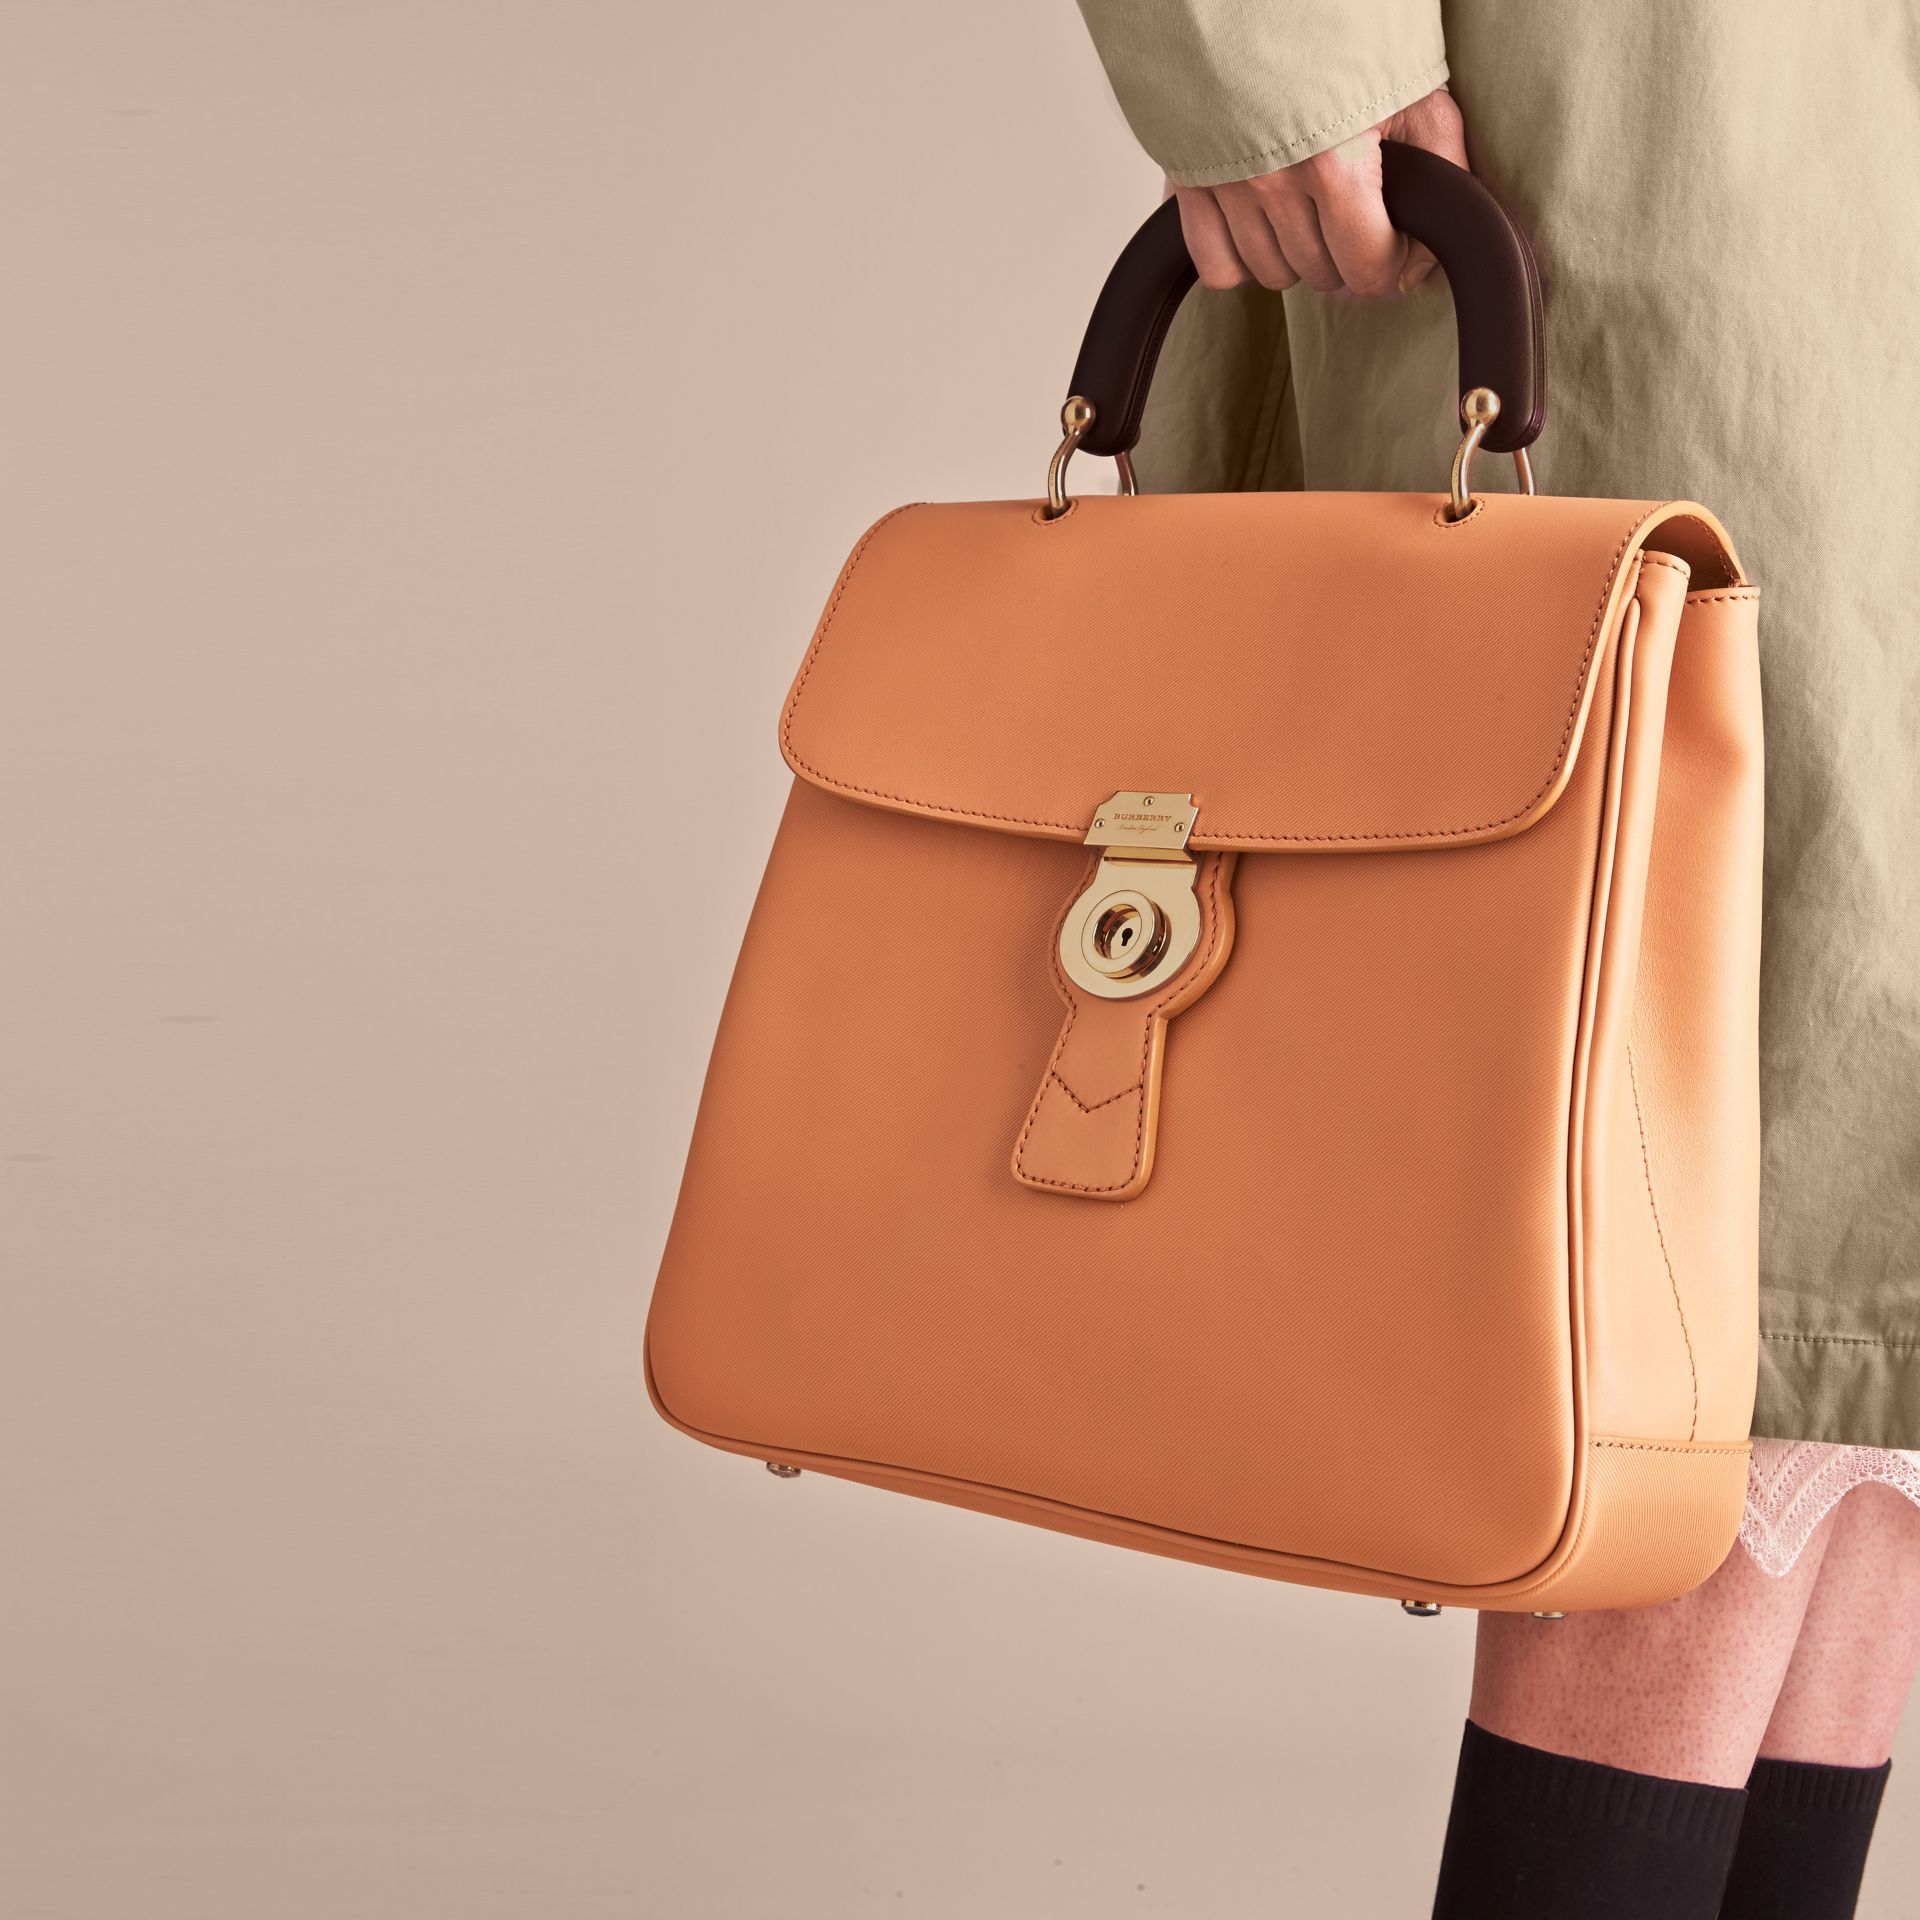 The Large DK88 Top Handle Bag in Pale Clementine - Women | Burberry Canada - gallery image 7